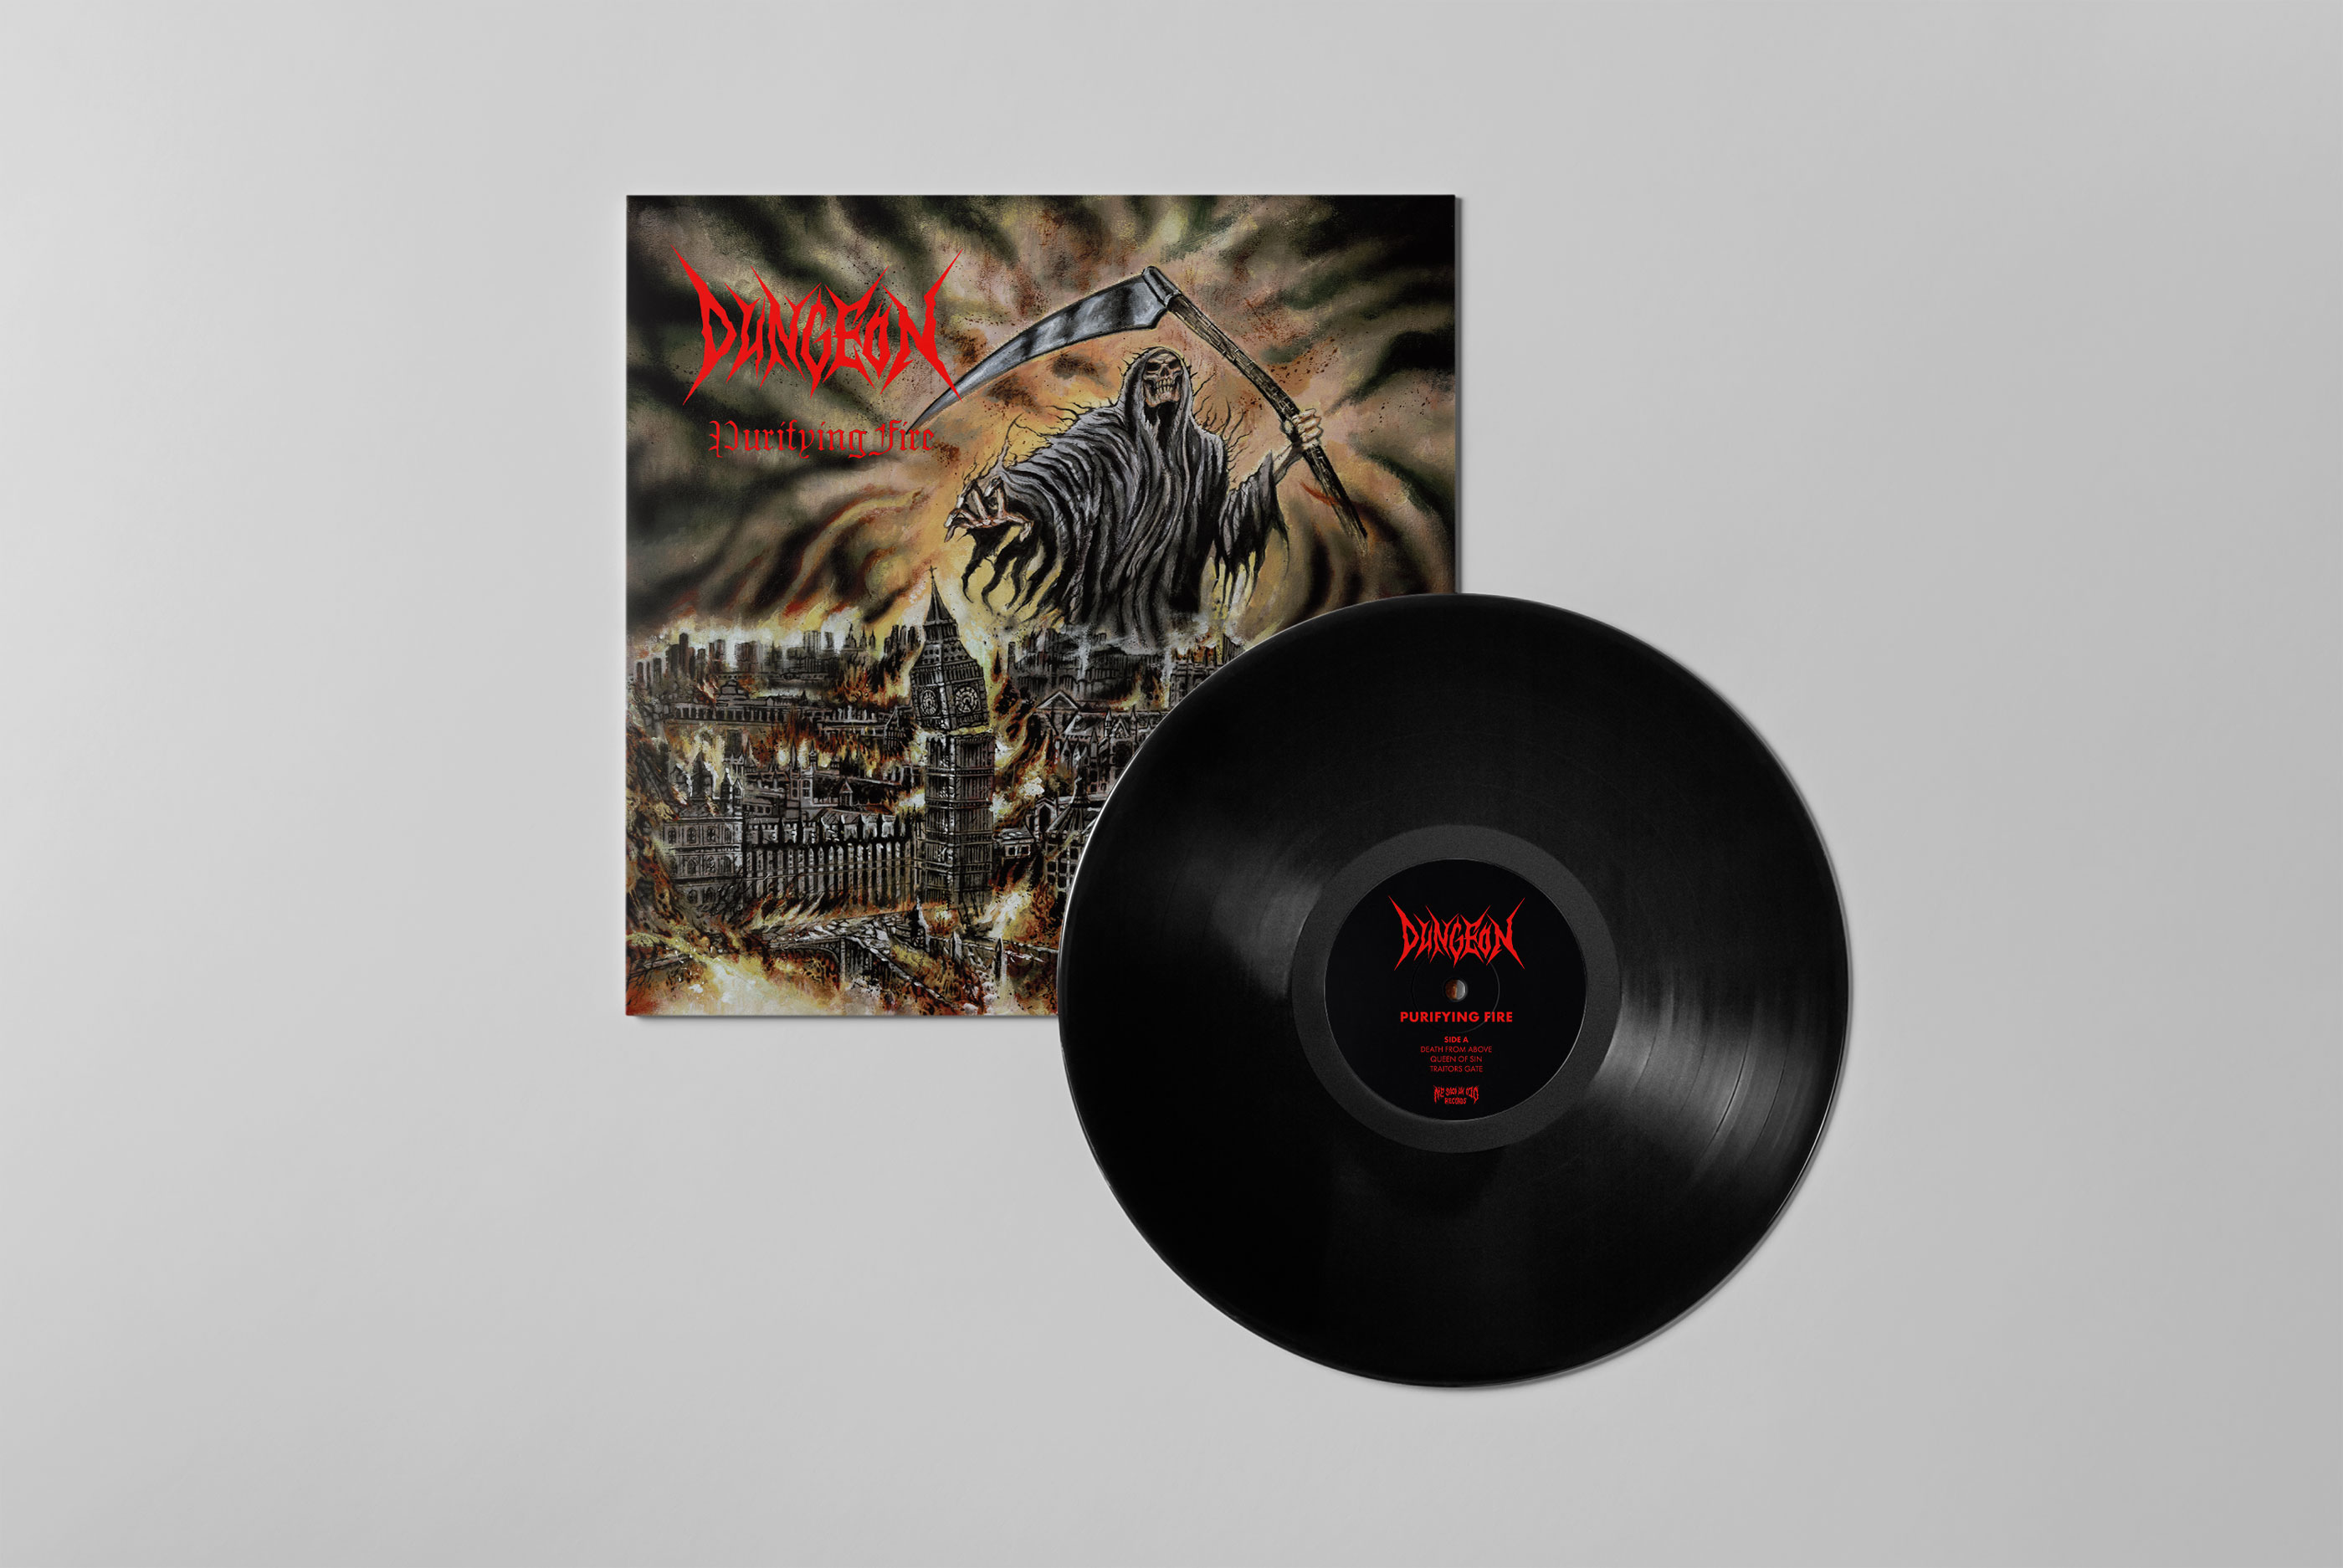 Dungeon – Purifying Fire on vinyl